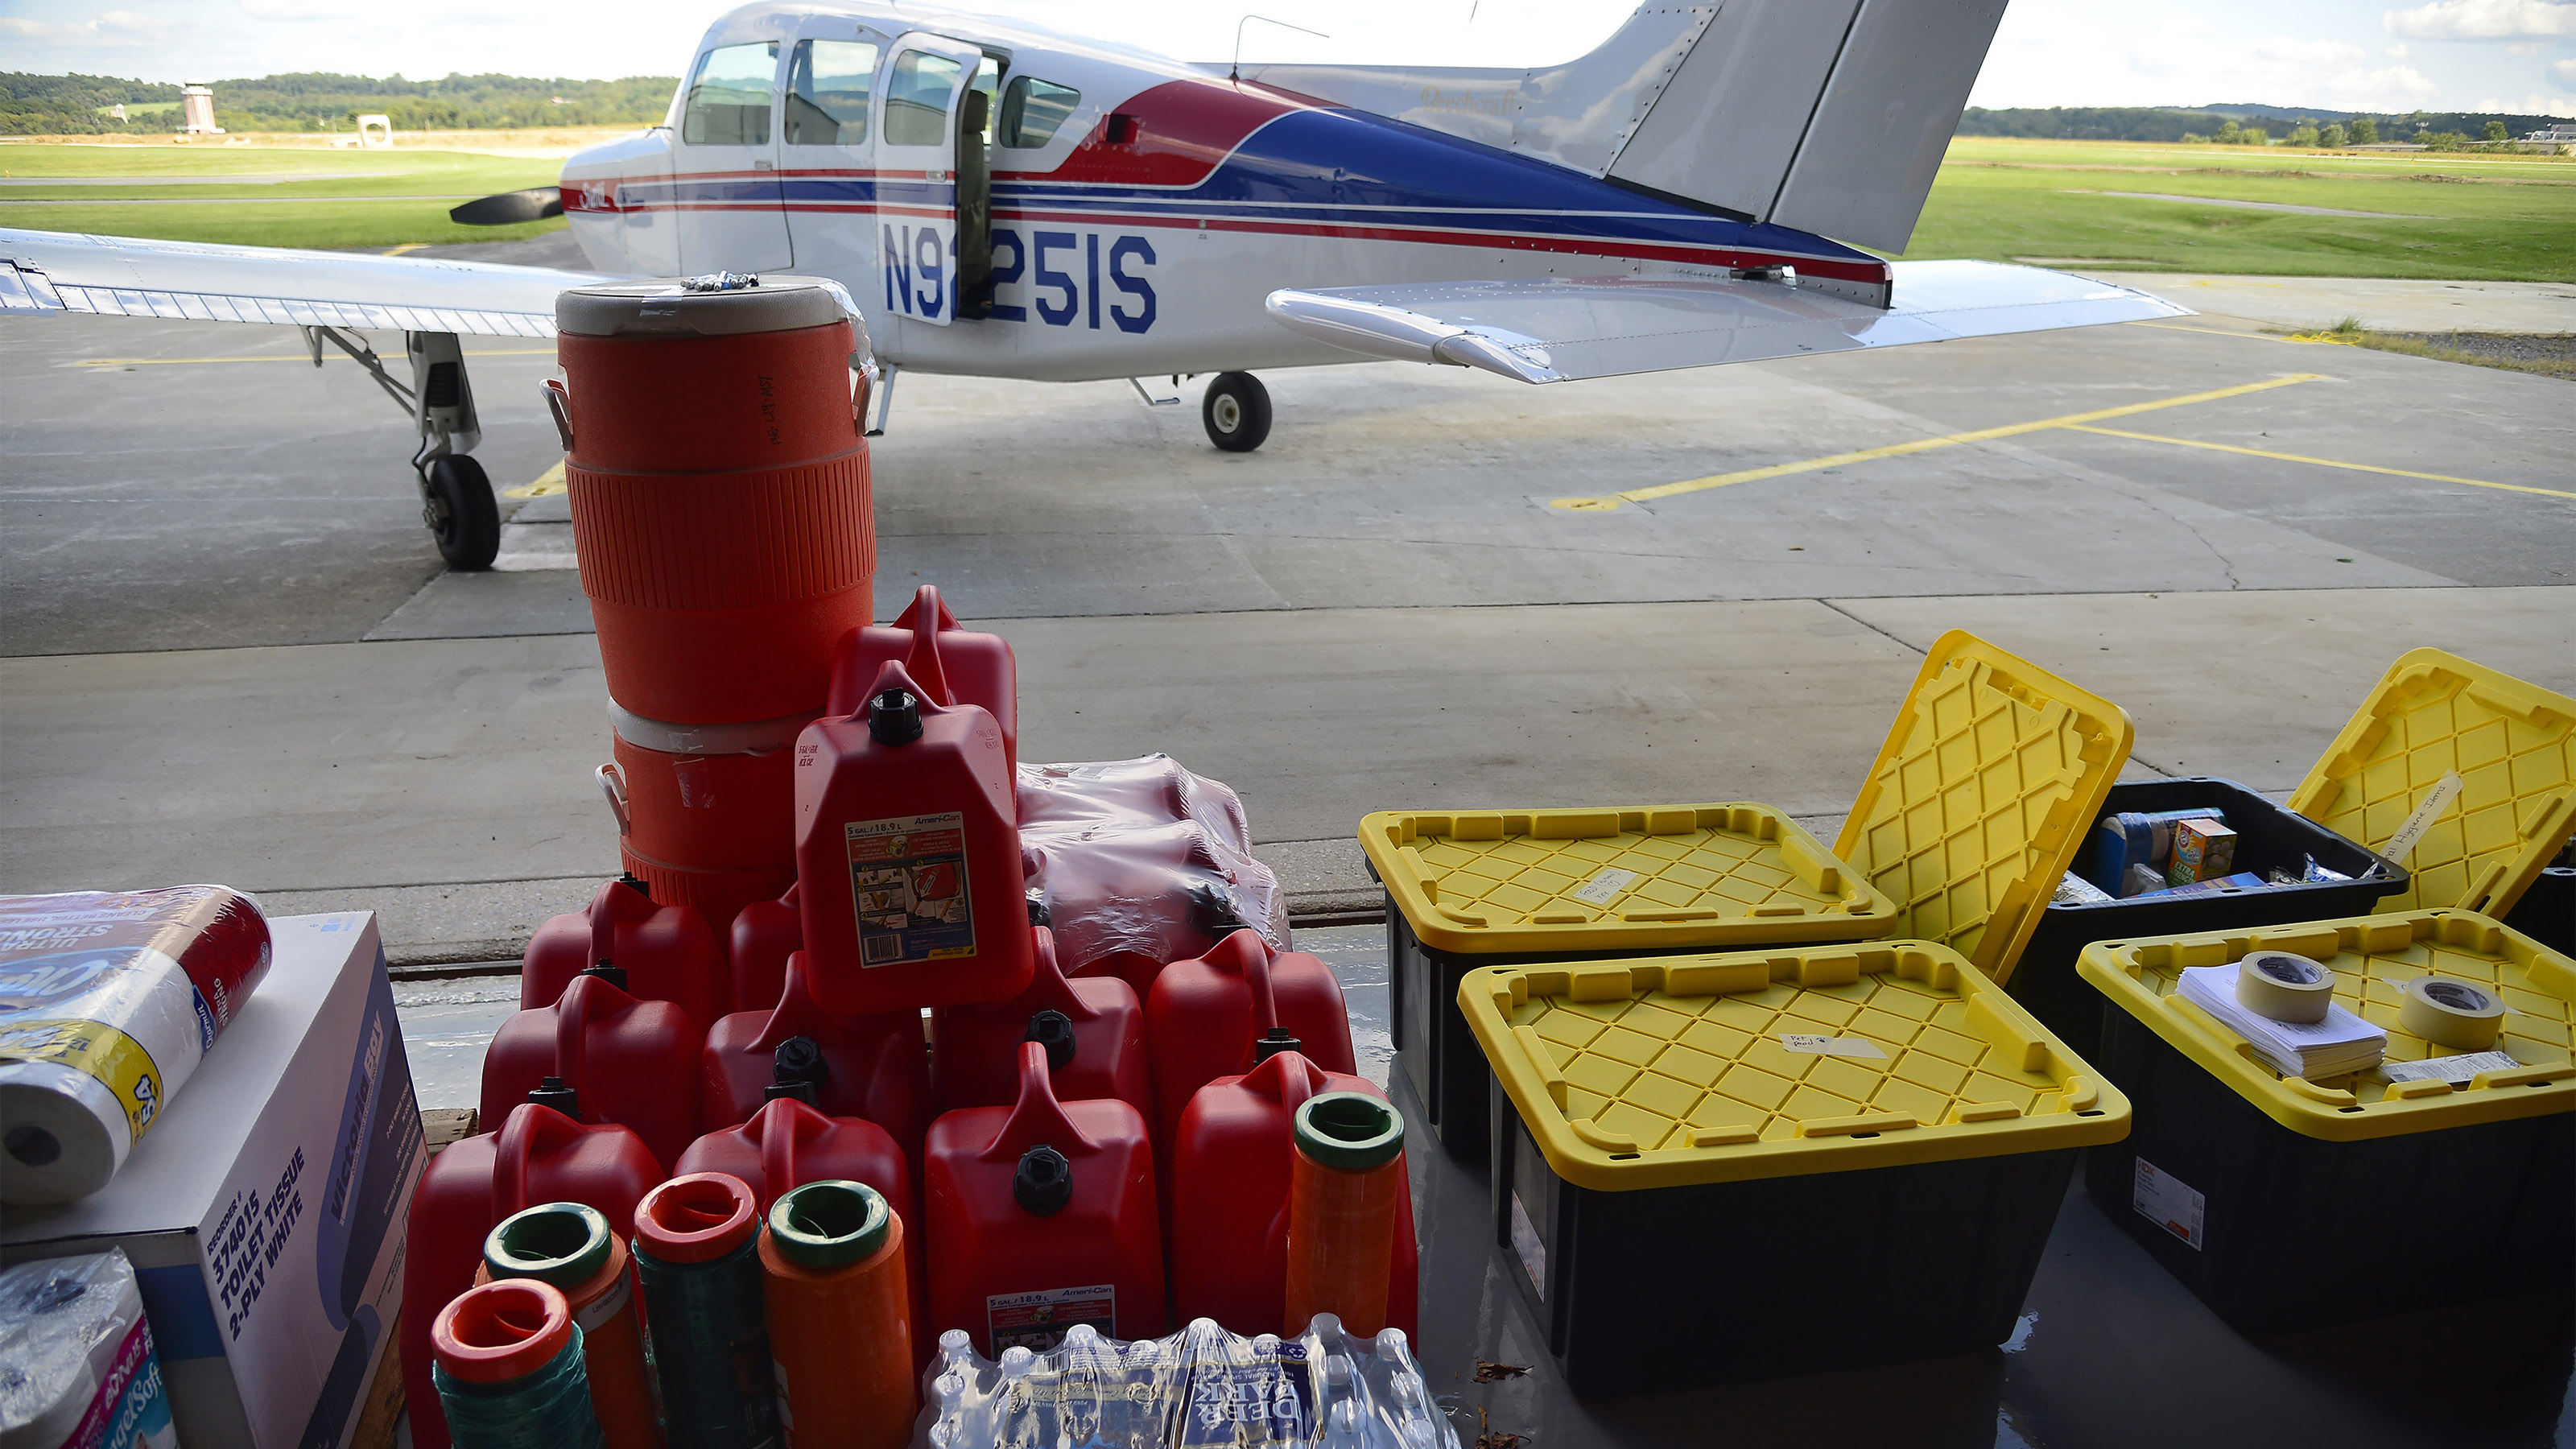 AOPA participated in relief donations for Hurricane Harvey and Hurricane Irma, two devastating late-summer storms that swept through Texas, Louisiana, and Florida. The National Aviation Community Center in Frederick, Maryland, was the local staging point for supplies headed toward the hard-hit states. Photo by David Tulis.